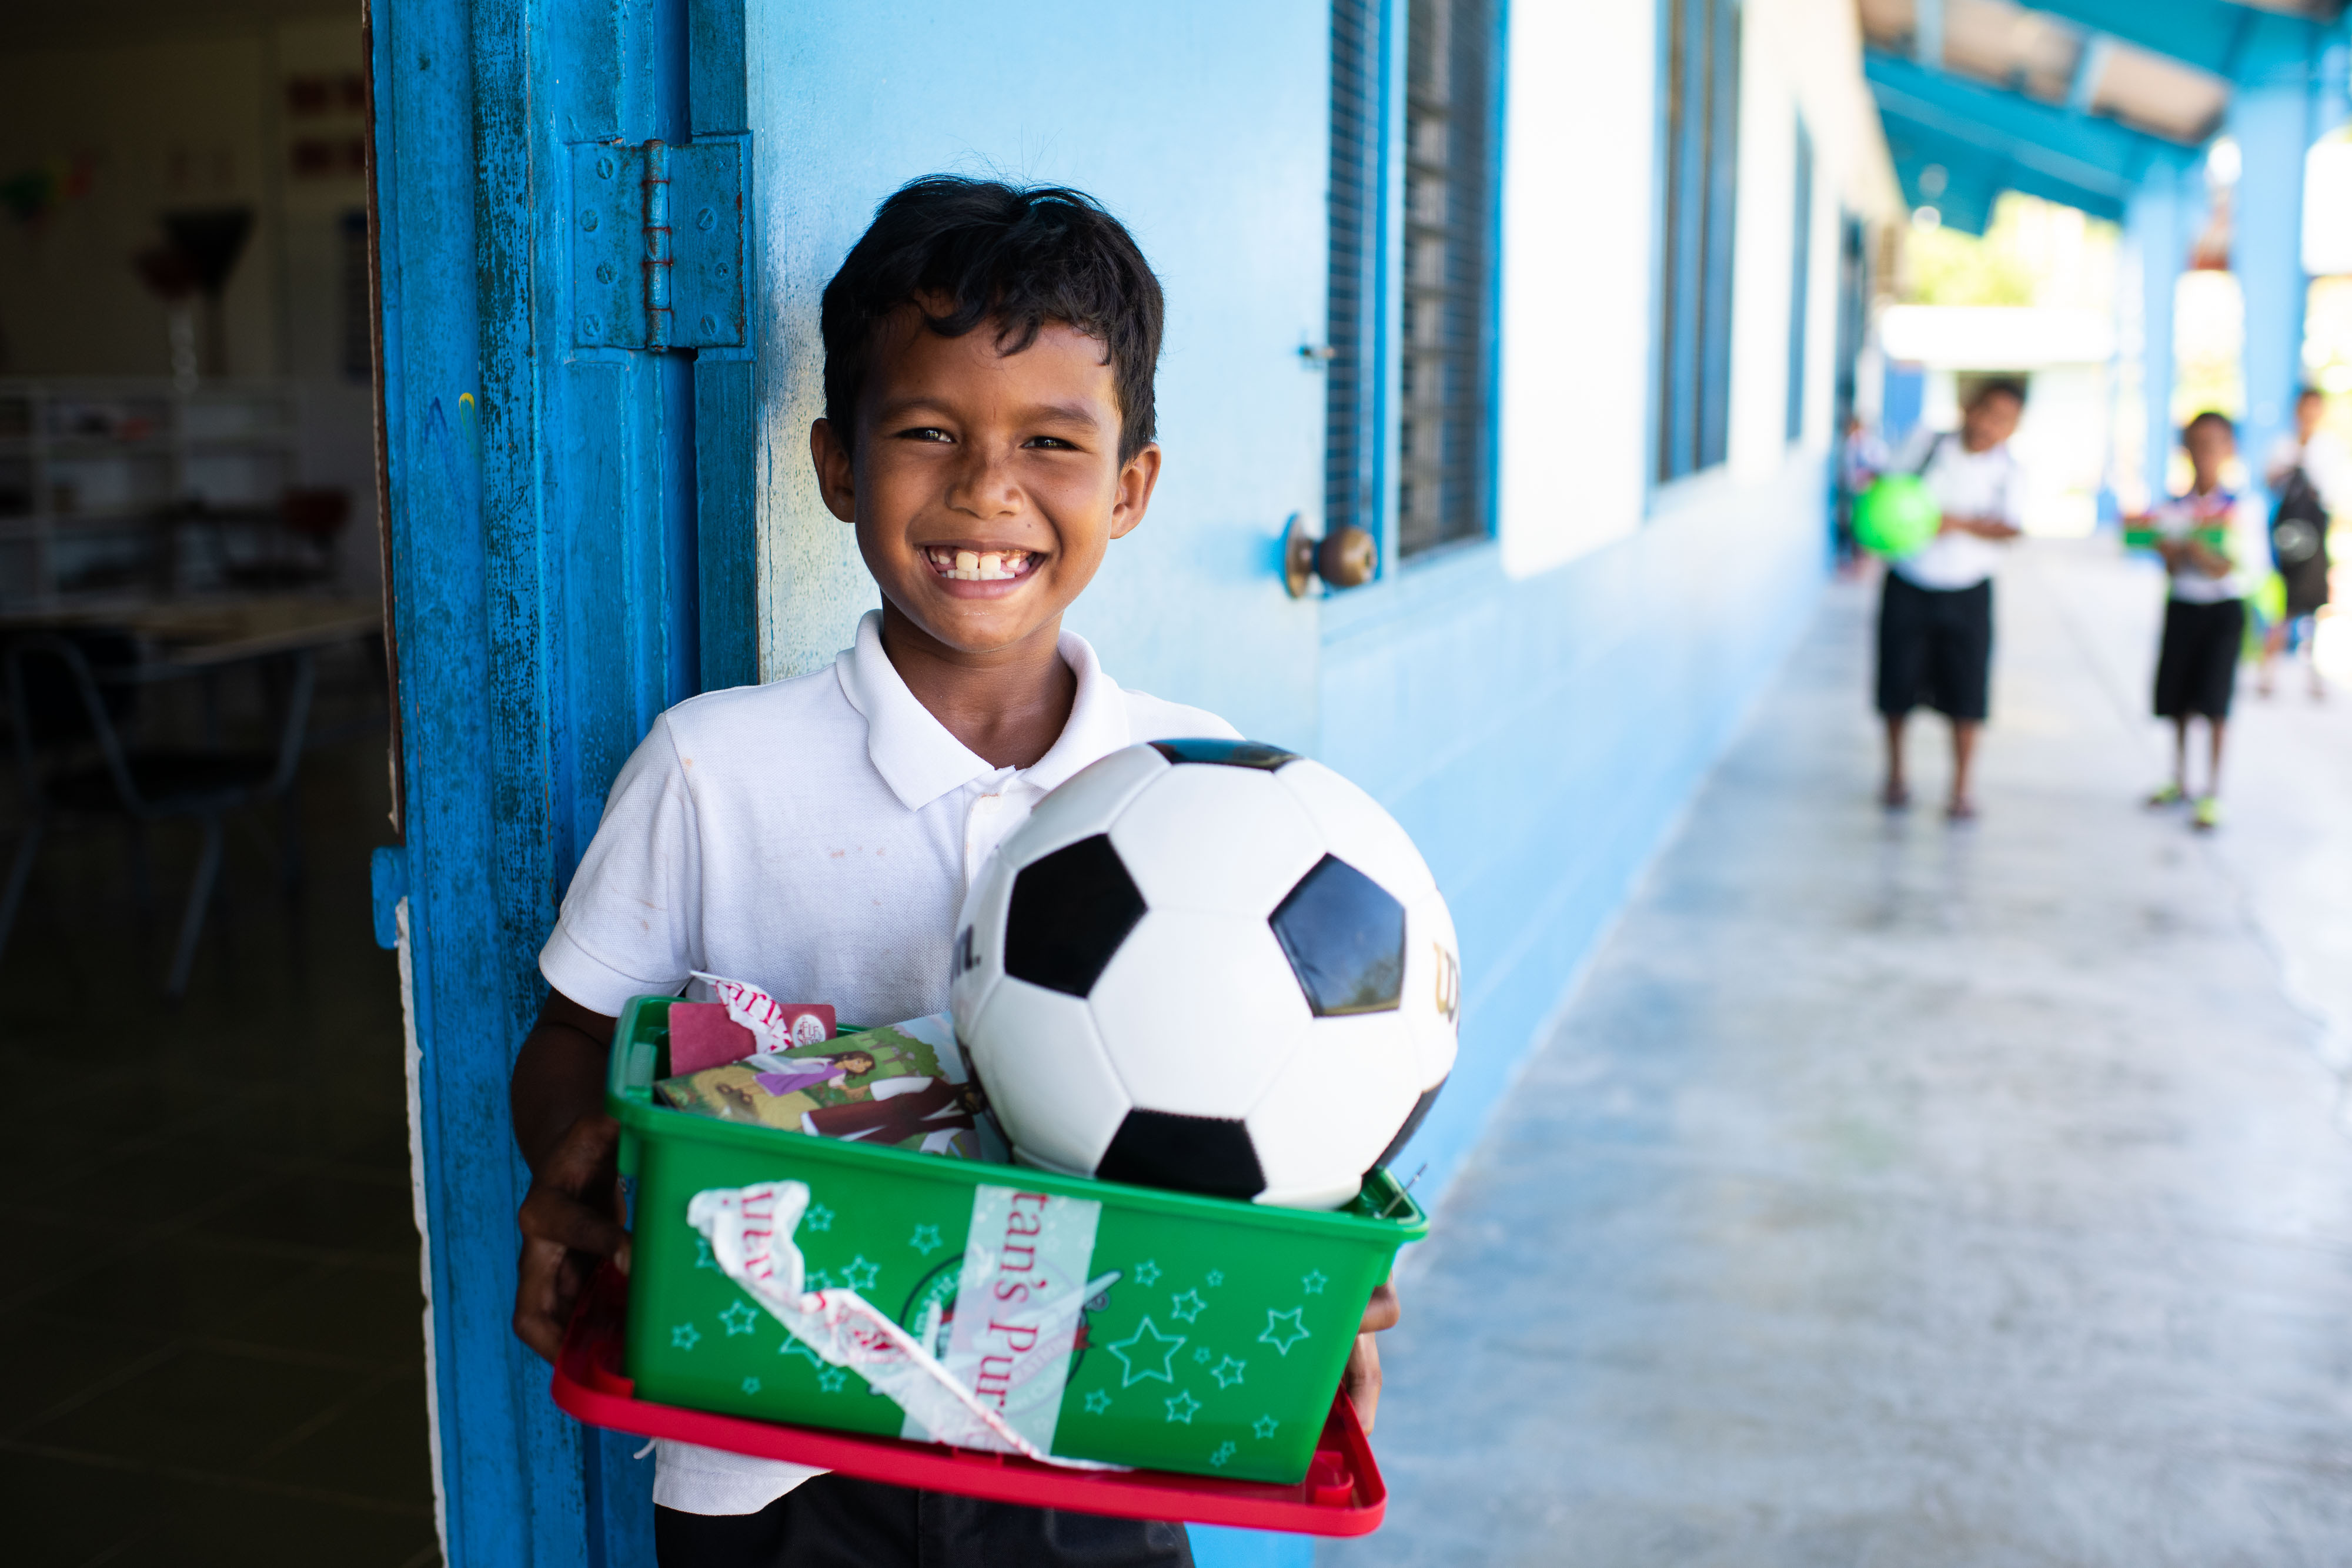 """A BOY FROM PELELIU ISLAND CELEBRATES THE """"WOW"""" TOY IN HIS GIFT-FILLED SHOEBOX."""